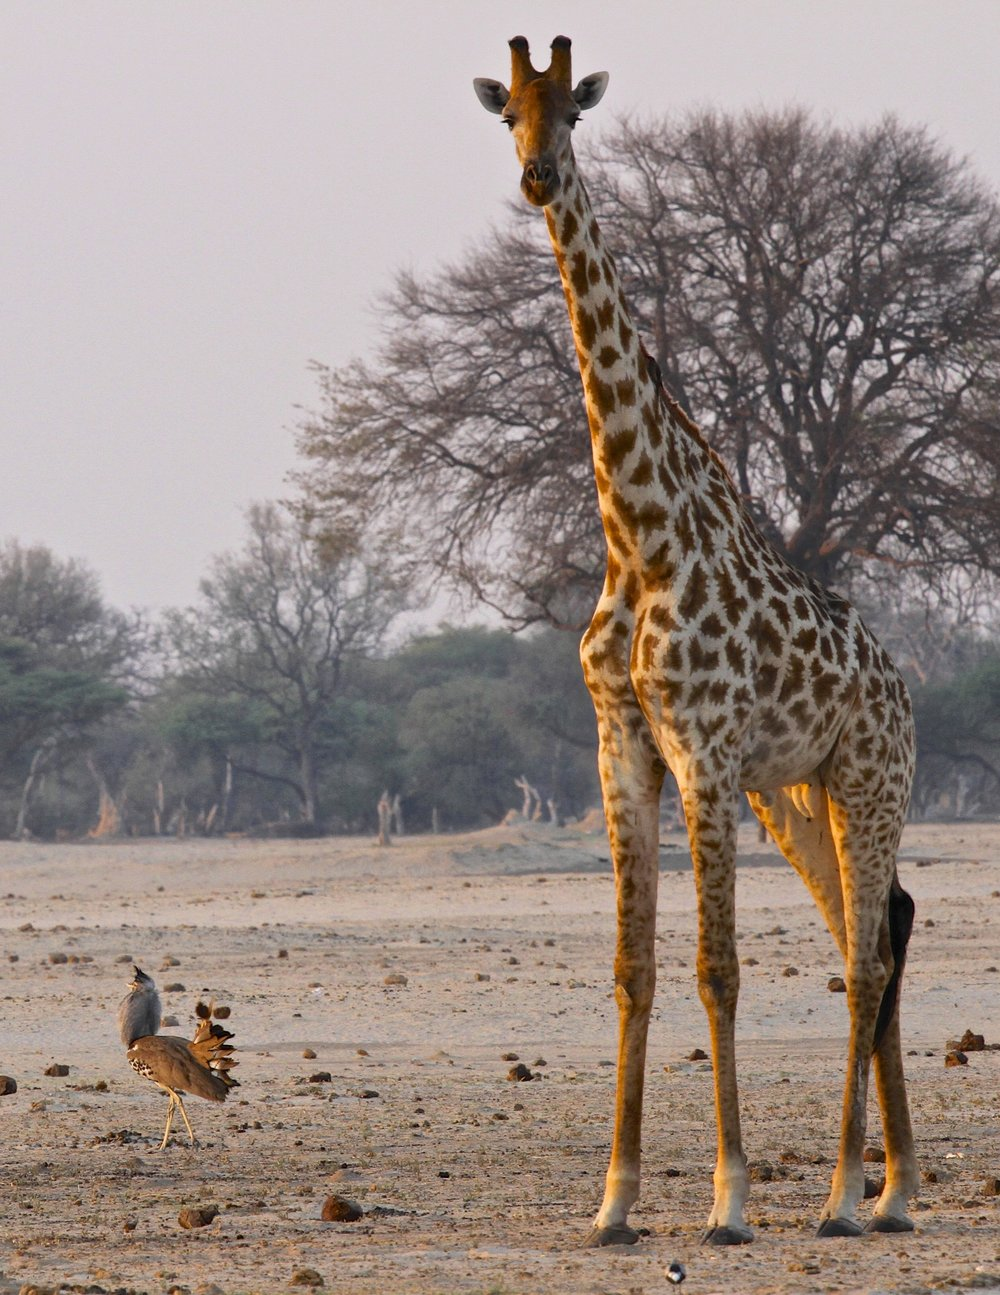 45. Imvelo Safari Lodges - Bomani Tented Lodge - Kori Bustard and Giraffe at Ngamo.jpg